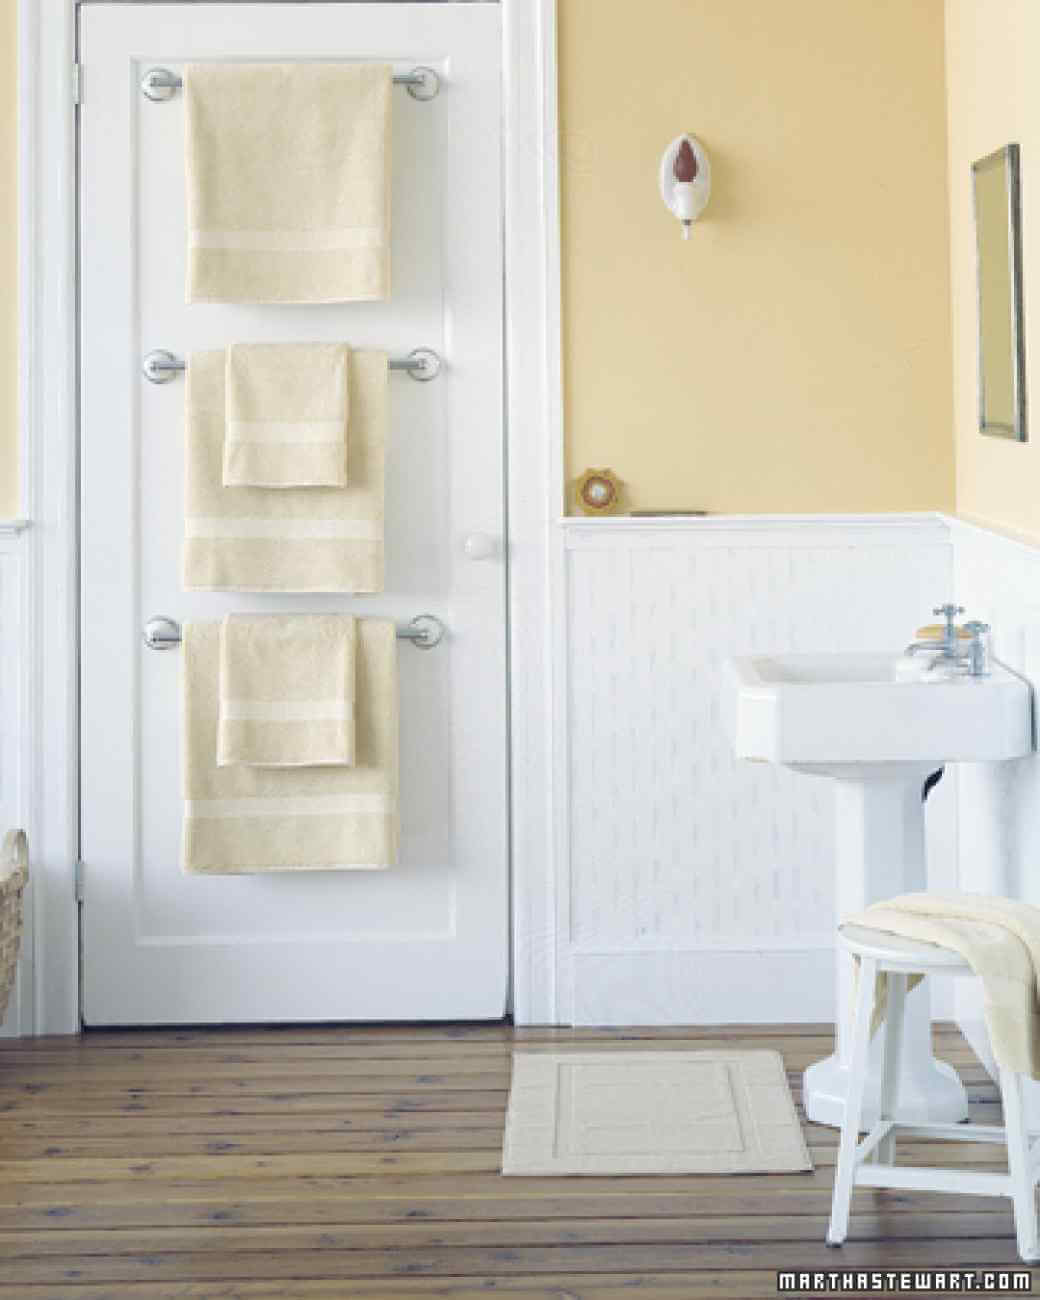 Storage Ideas For Small Bathrooms. 4 An Example Of Vertical Space